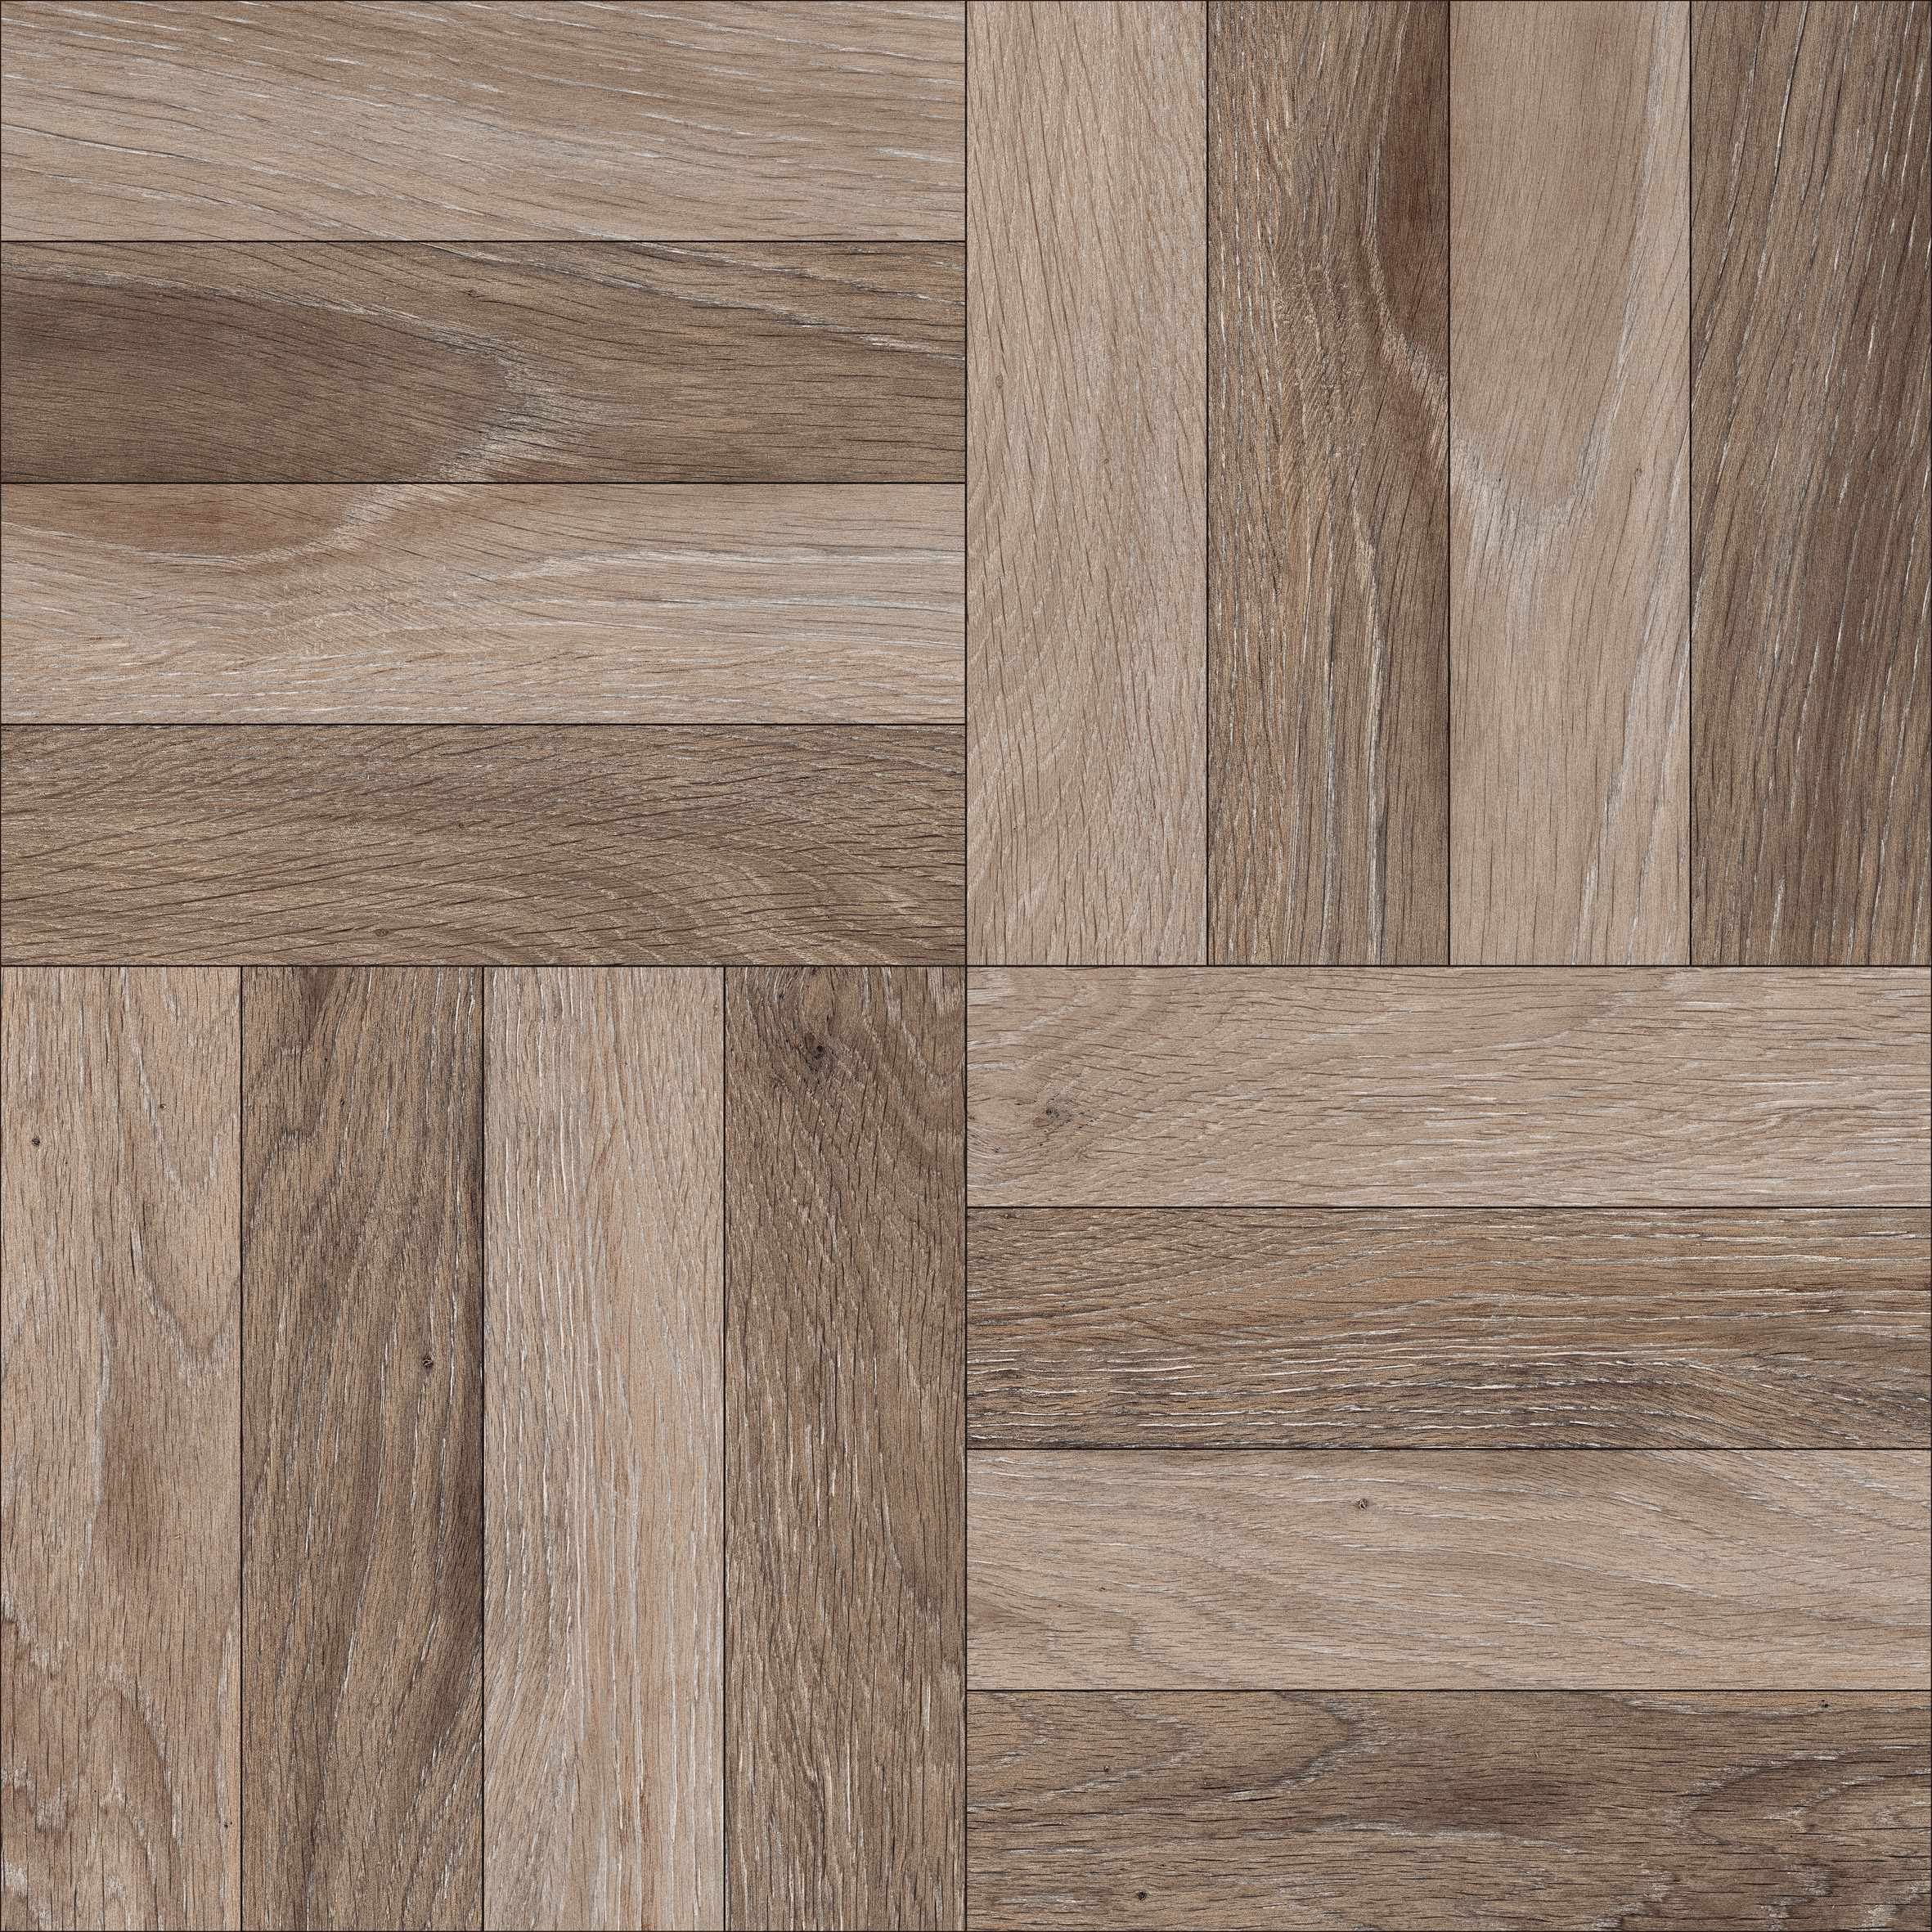 rrk-plank-wood-decor